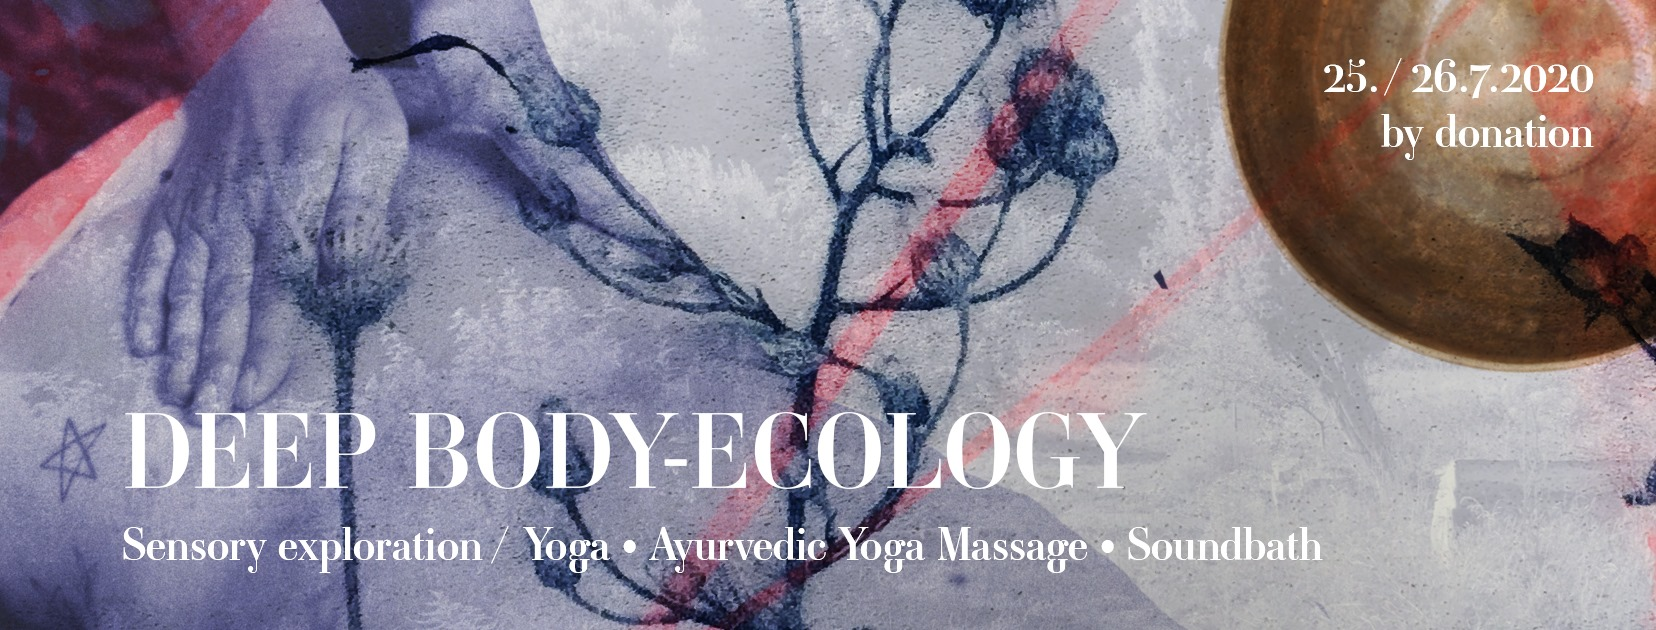 DEEP_BODY-ECOLOGY